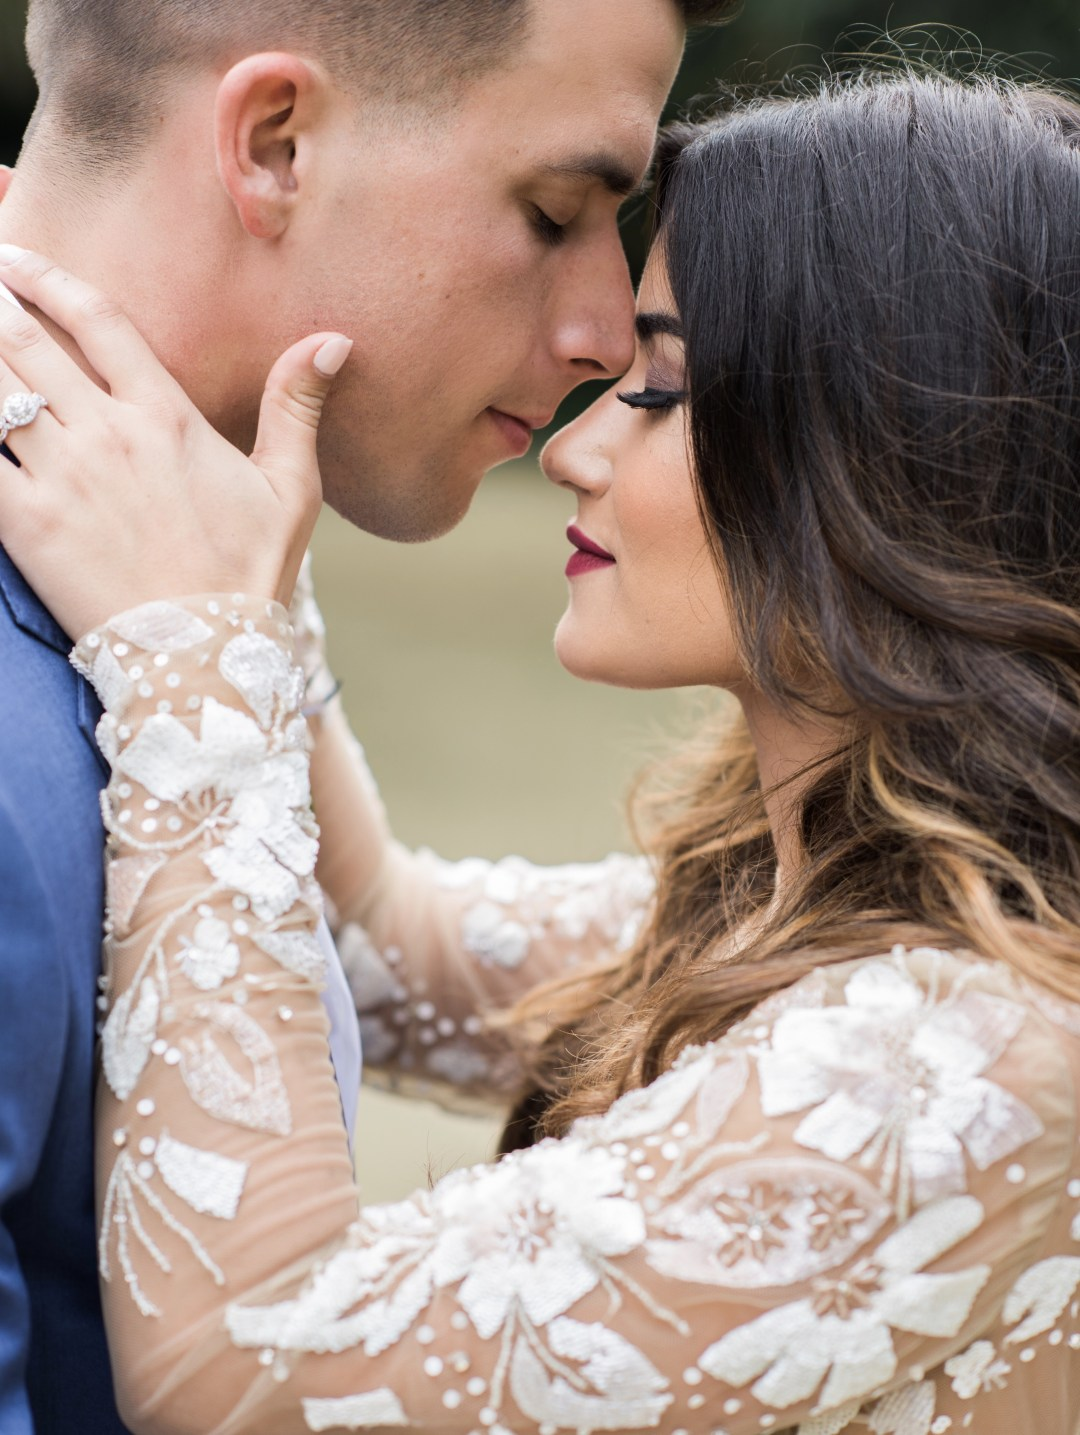 Sugar Love Chic blogger Krista Perez shares her first Six Months of Marriage